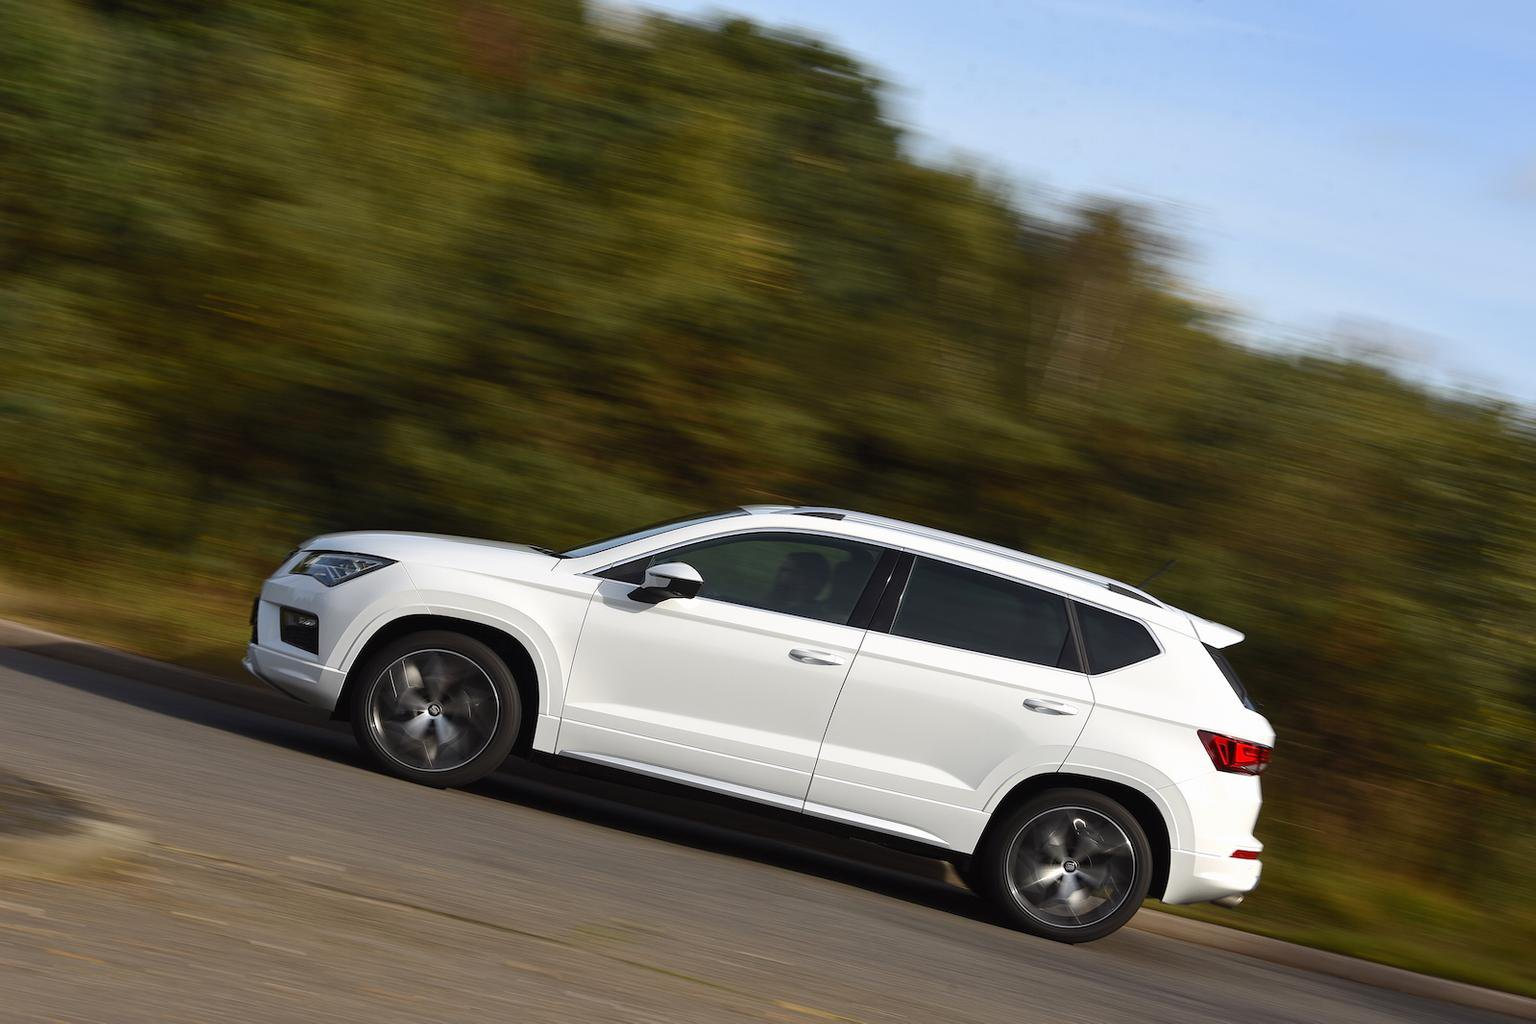 2017 Seat Ateca 2.0 TSI 190 4Drive FR review - verdict